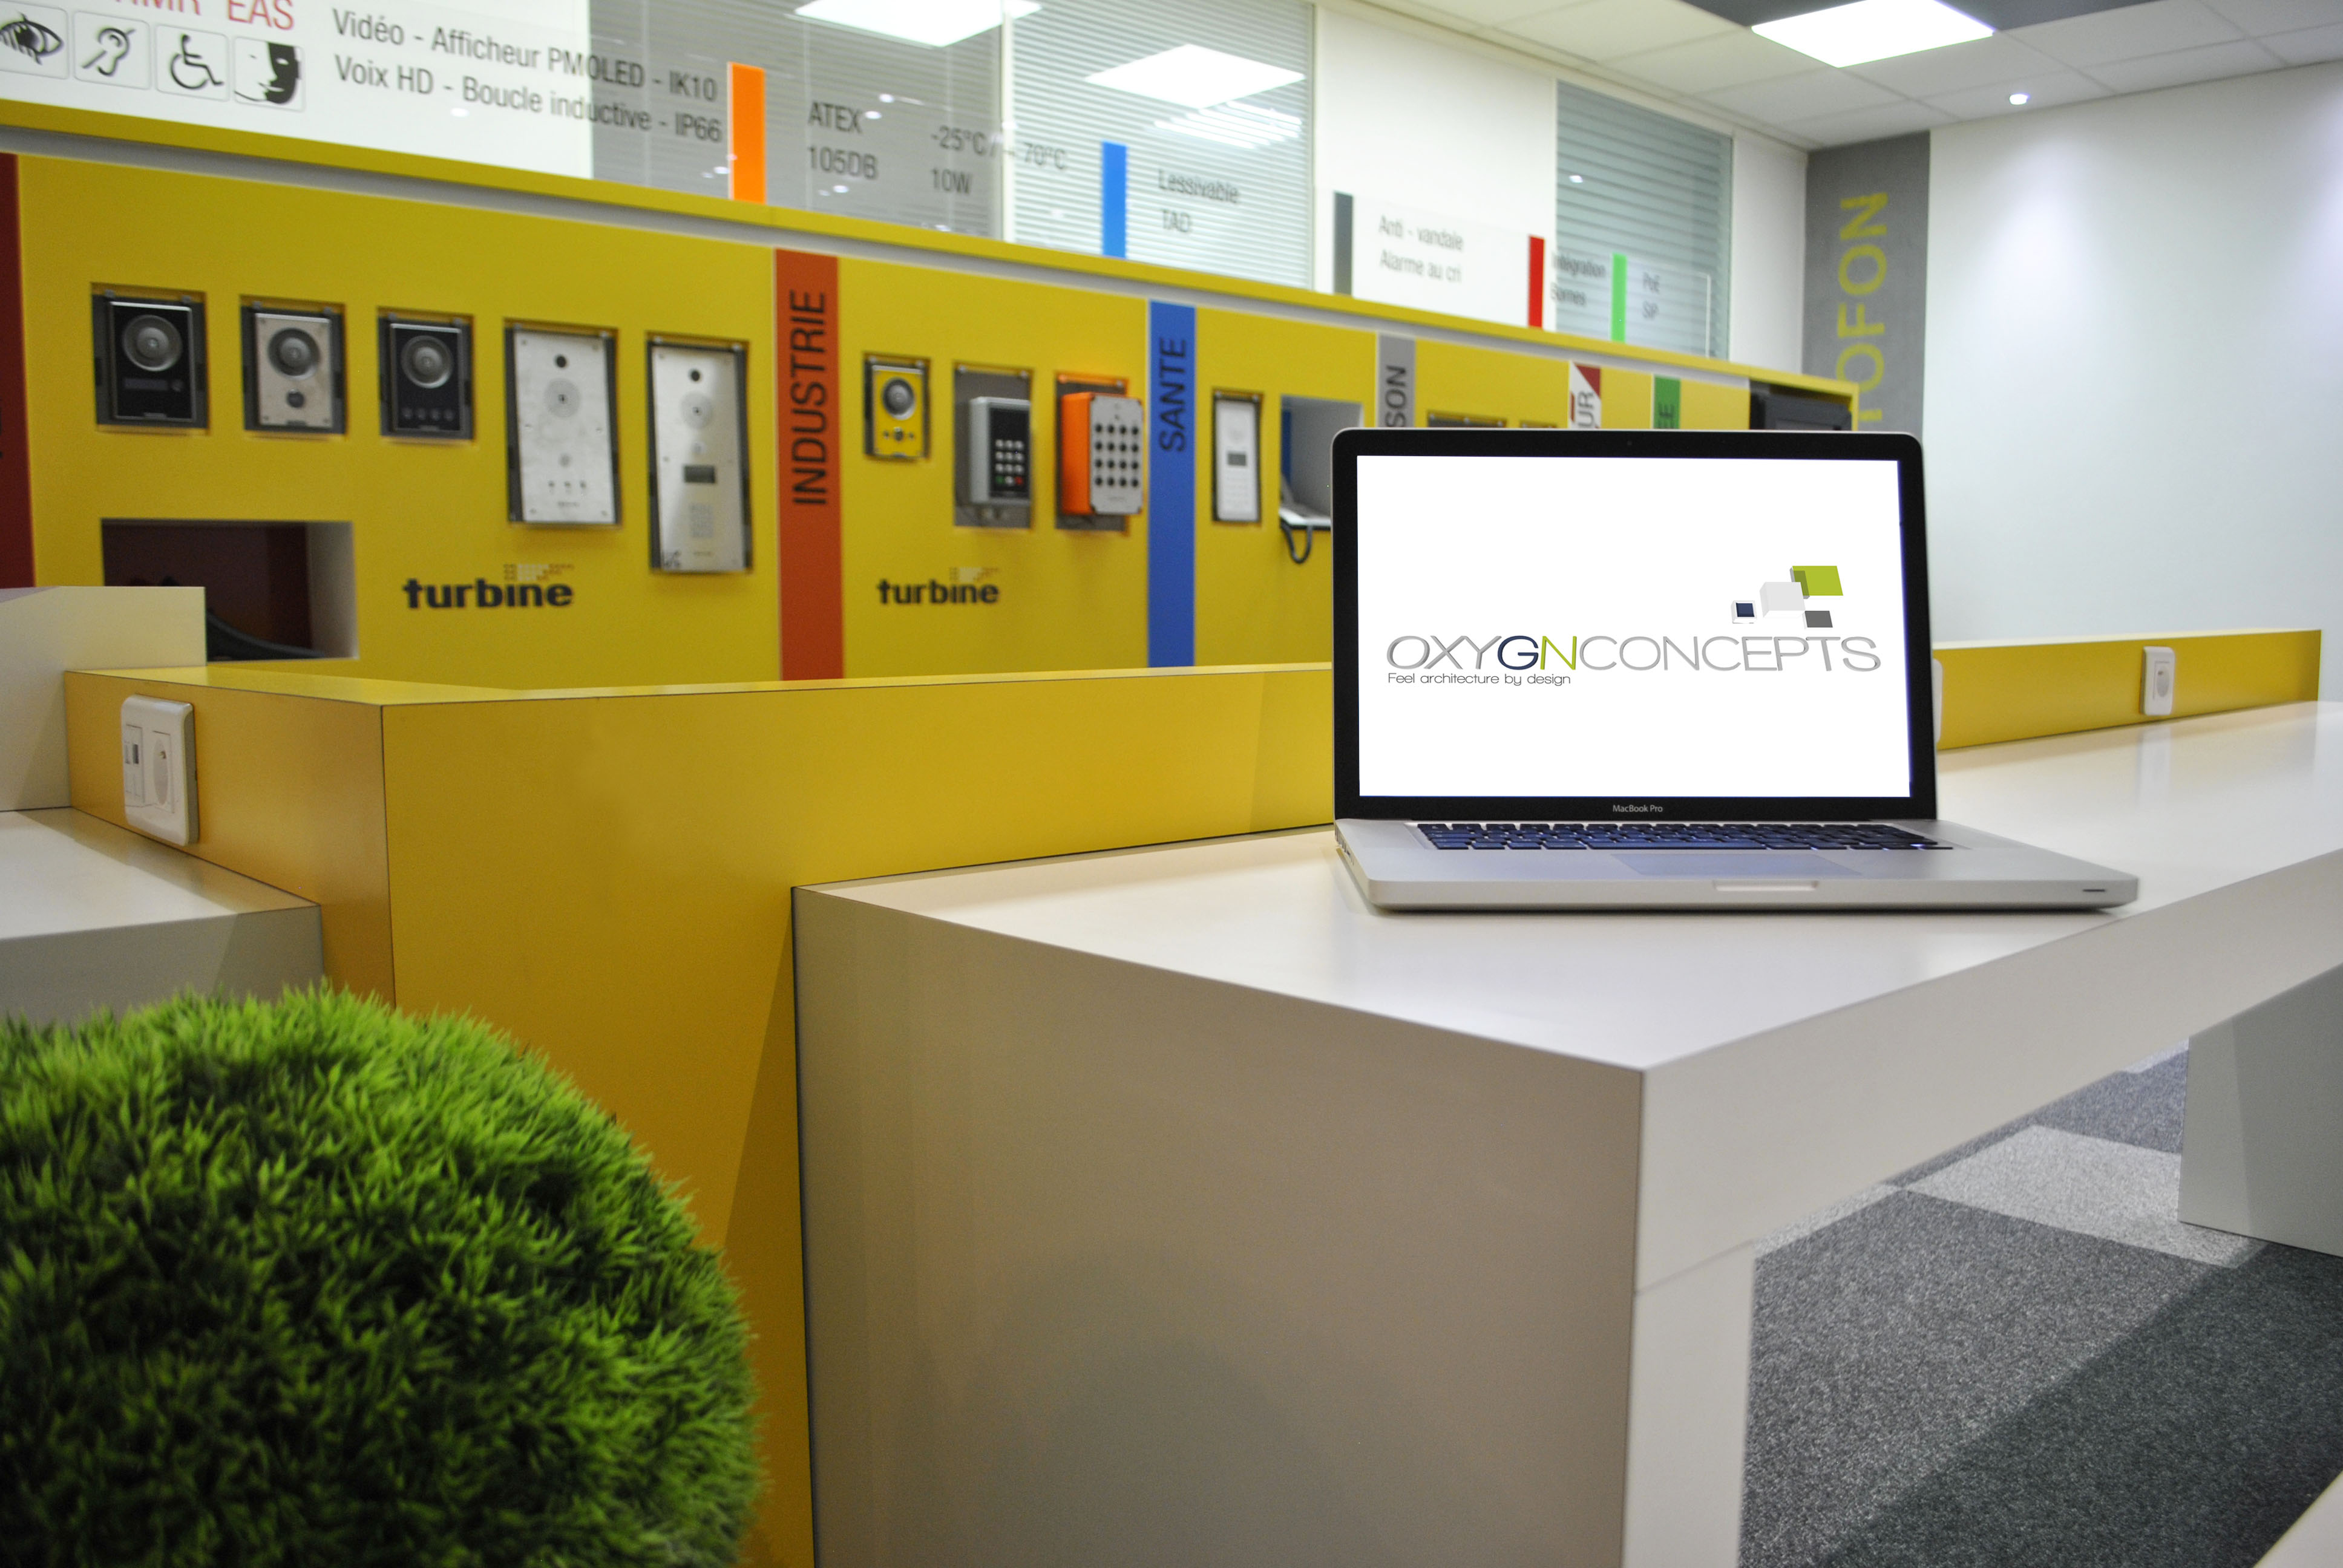 Showroom - Oxygn concepts